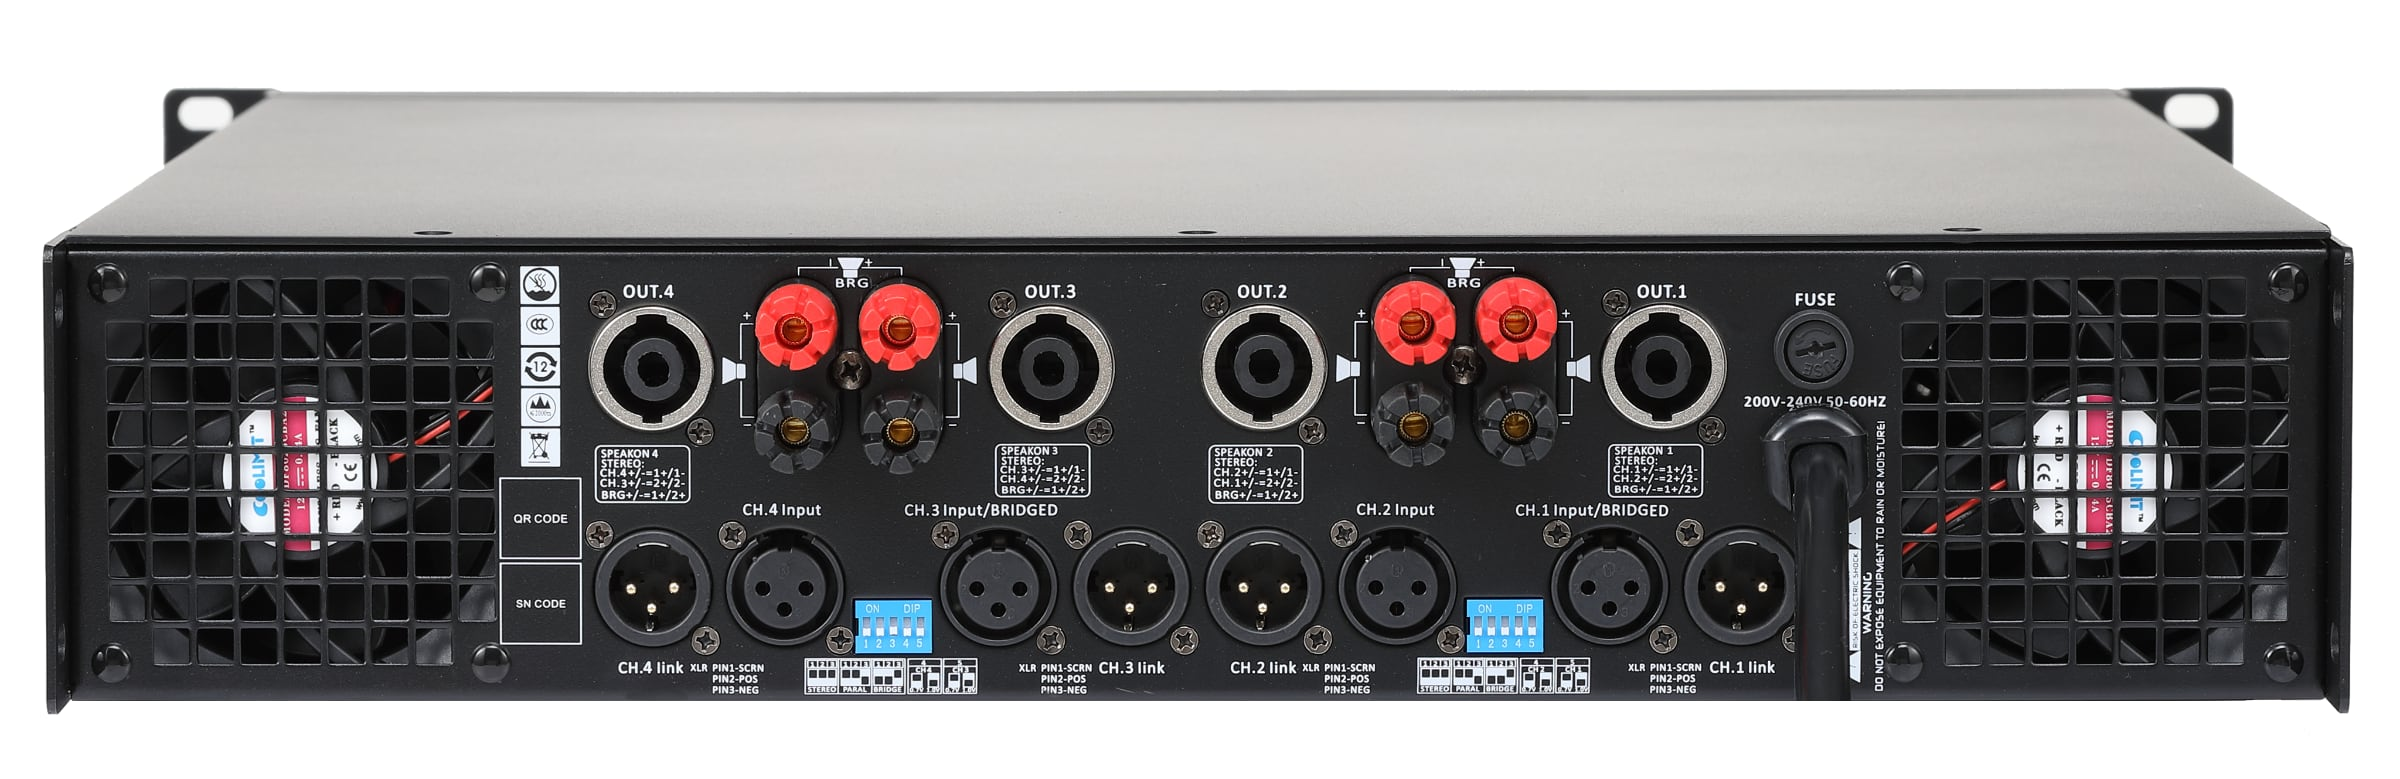 Công suất AAP DX-10004